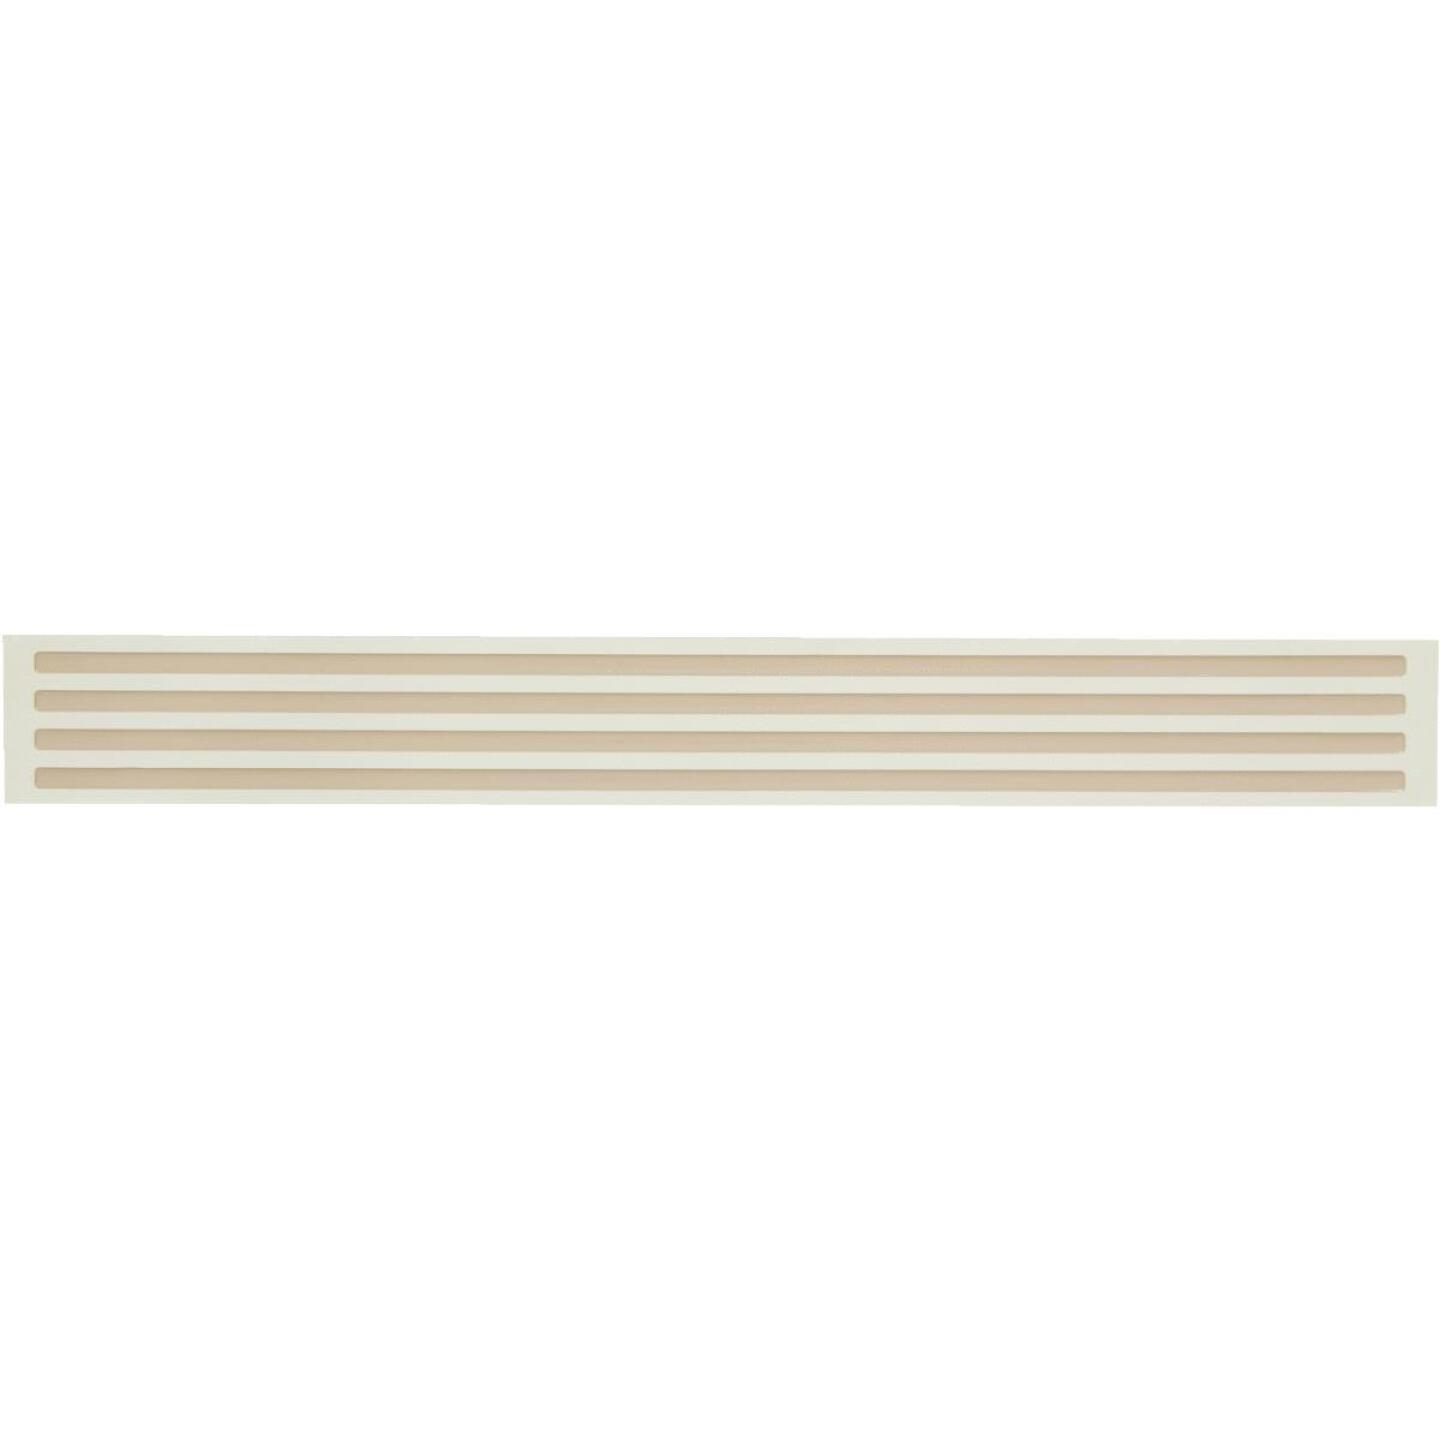 Smart Edge 0.27 In. x 18 In. Peel & Stick Edge Backsplash Trim, Panella (4-Pack) Image 1